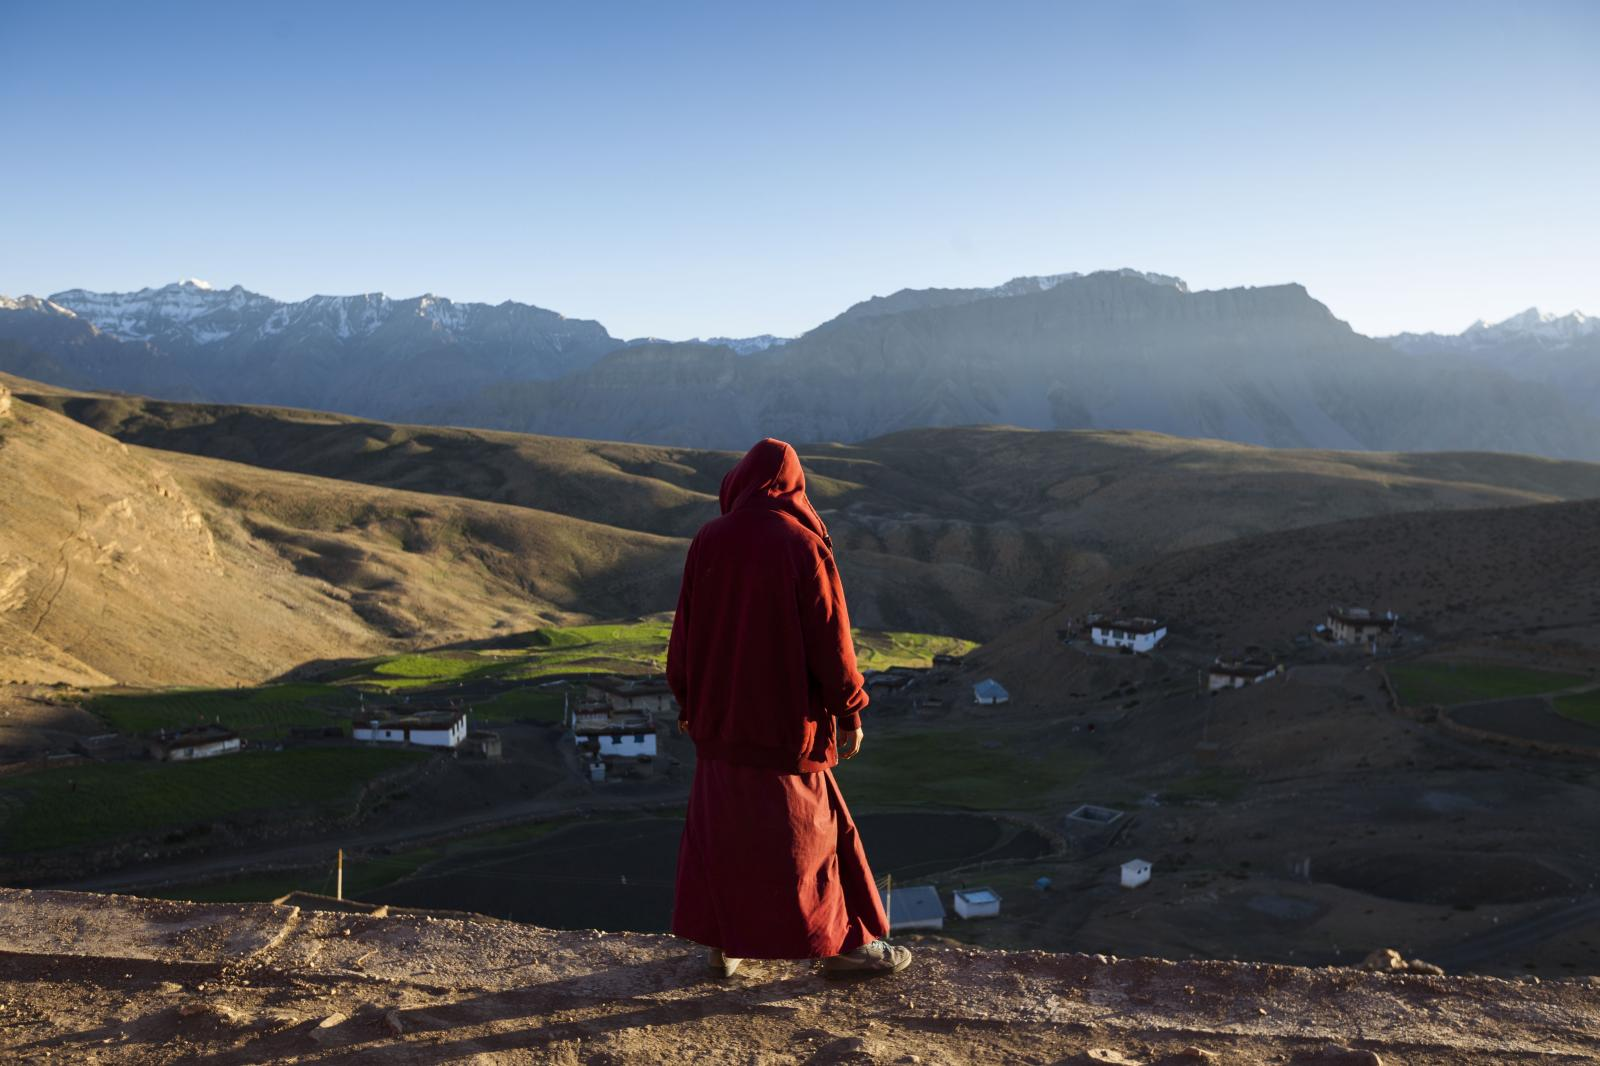 Buddhist monk Nyima Kungha, 39, looks out from Tnagyud Gompa monastery as the sun sets in Komik village, in Spiti Valley of the Indian northern state of Himachal Pradesh.